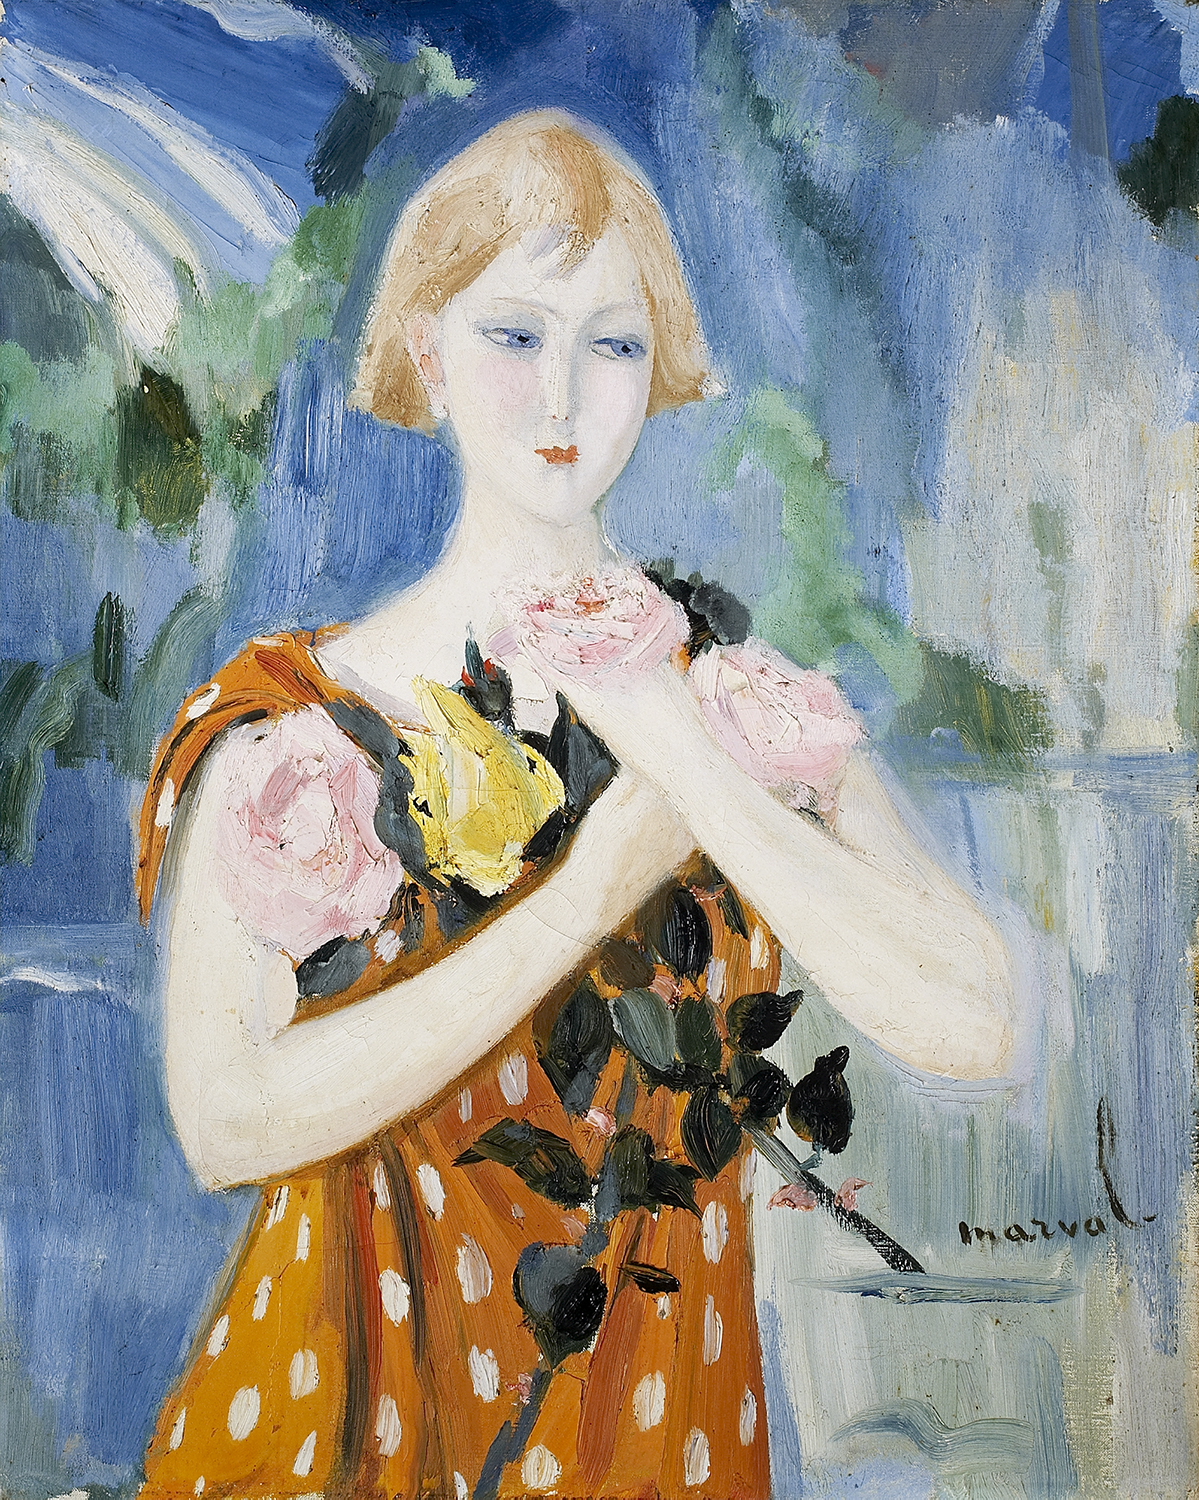 Agnès et ses Roses, Jacqueline Marval, 1925-1926. Oil on canvas, 81 cm x 65 cm. R. Patris d'Uckermann collection.